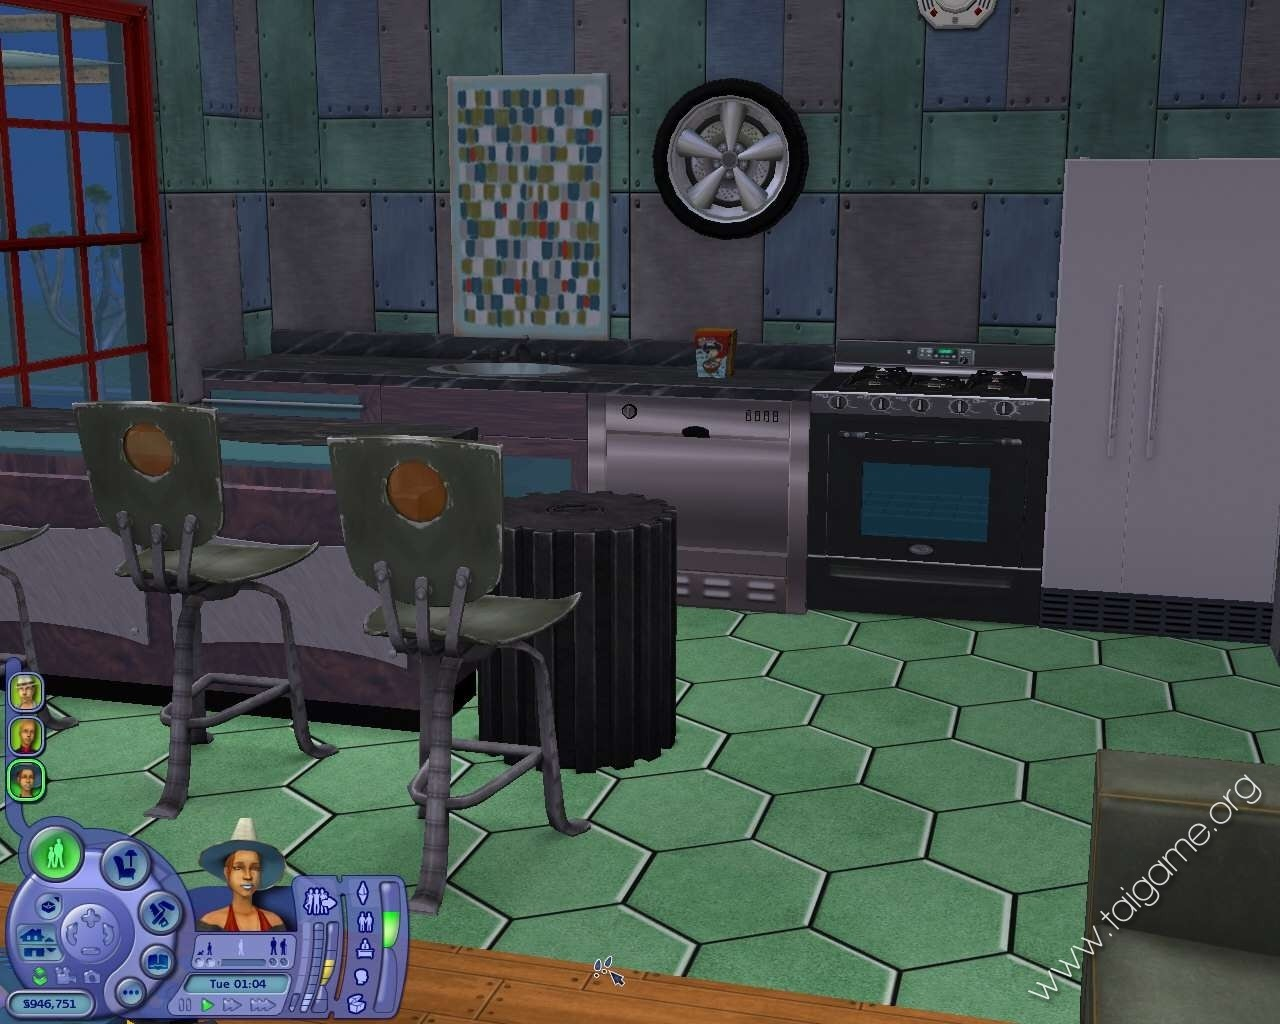 sims 2 free download full version pc windows